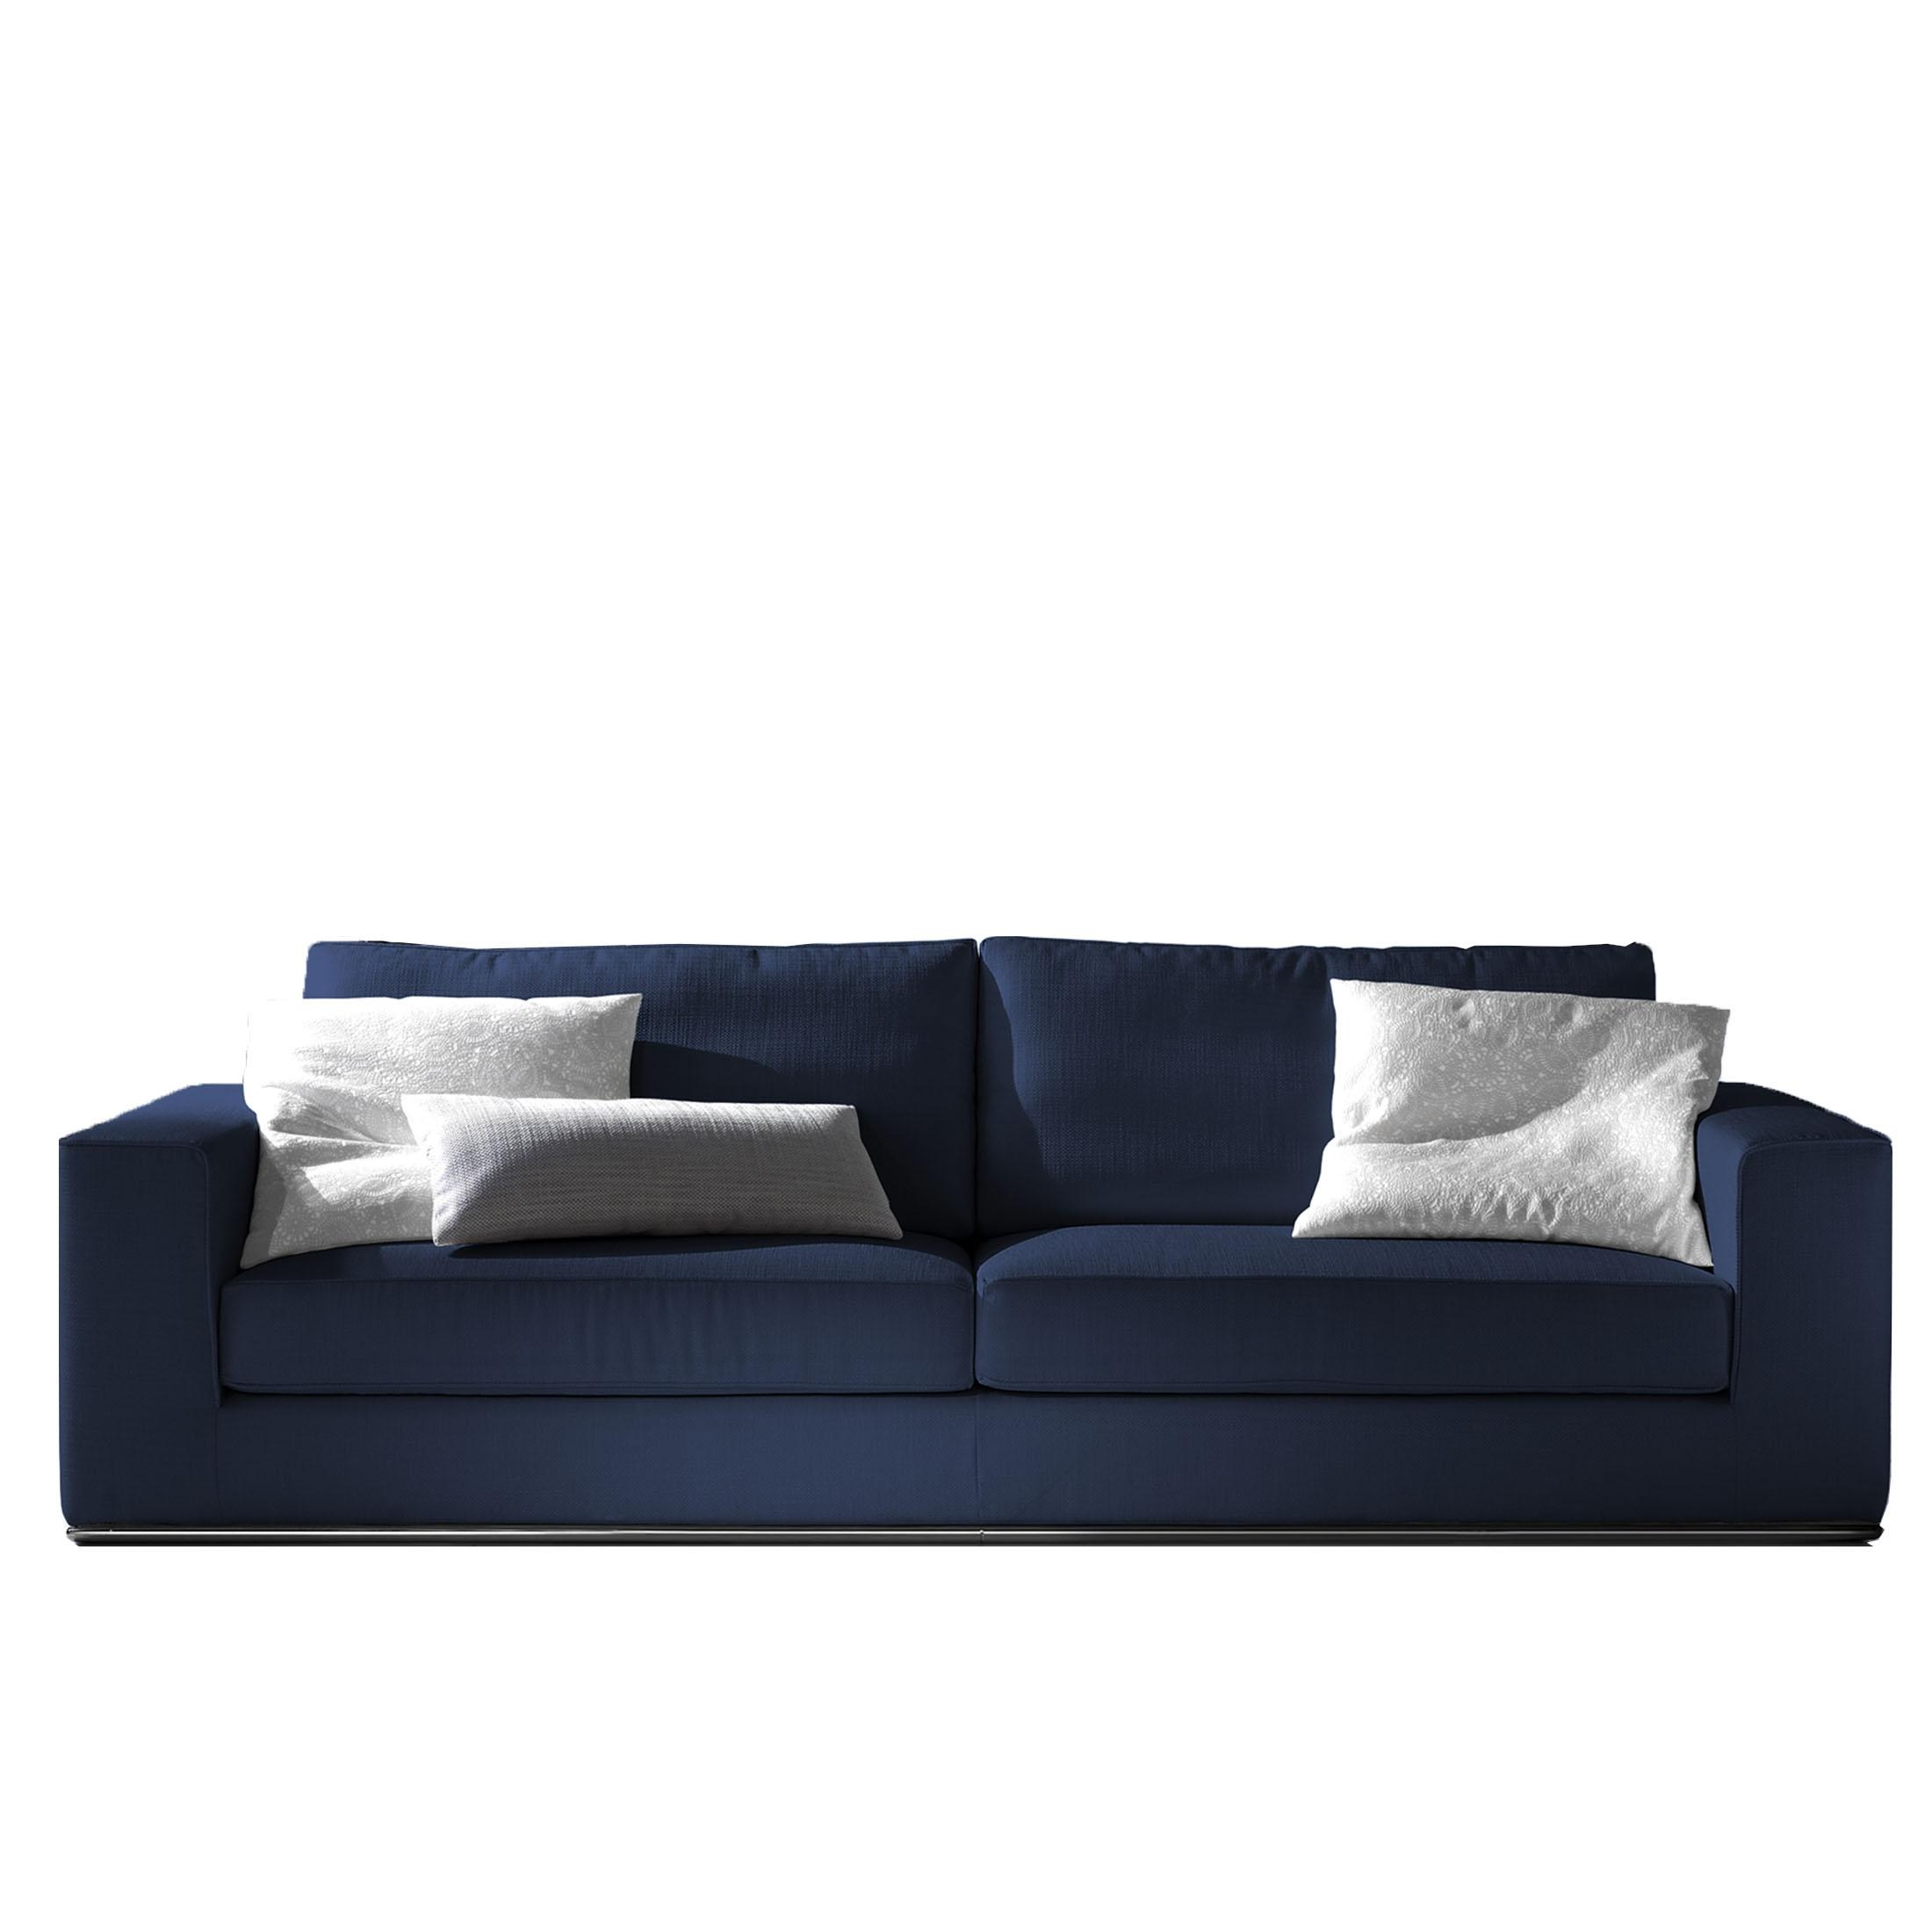 Karma 3 Seater Modular Sofa Available In Different Compositions Pertaining To Modern 3 Seater Sofas (Image 10 of 20)